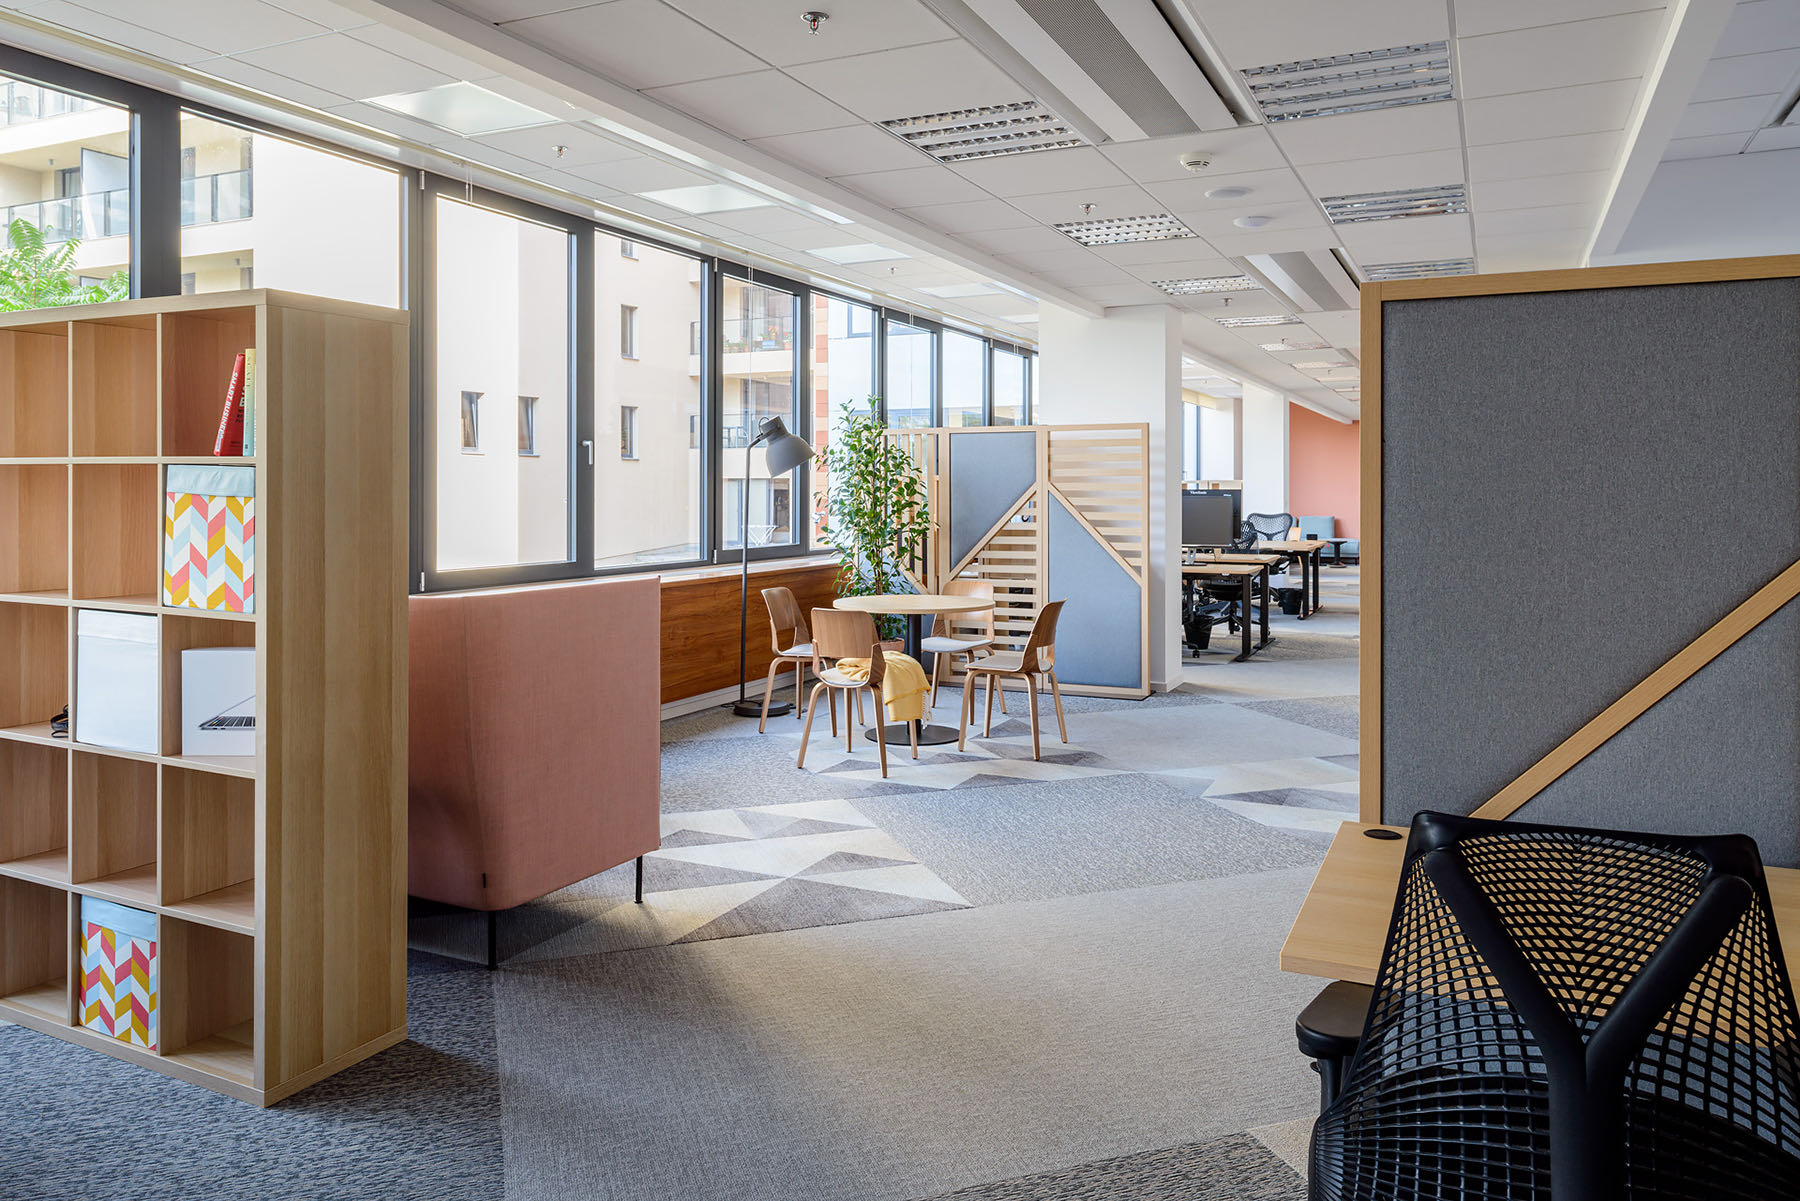 A Look Inside Applifting's New Prague Office